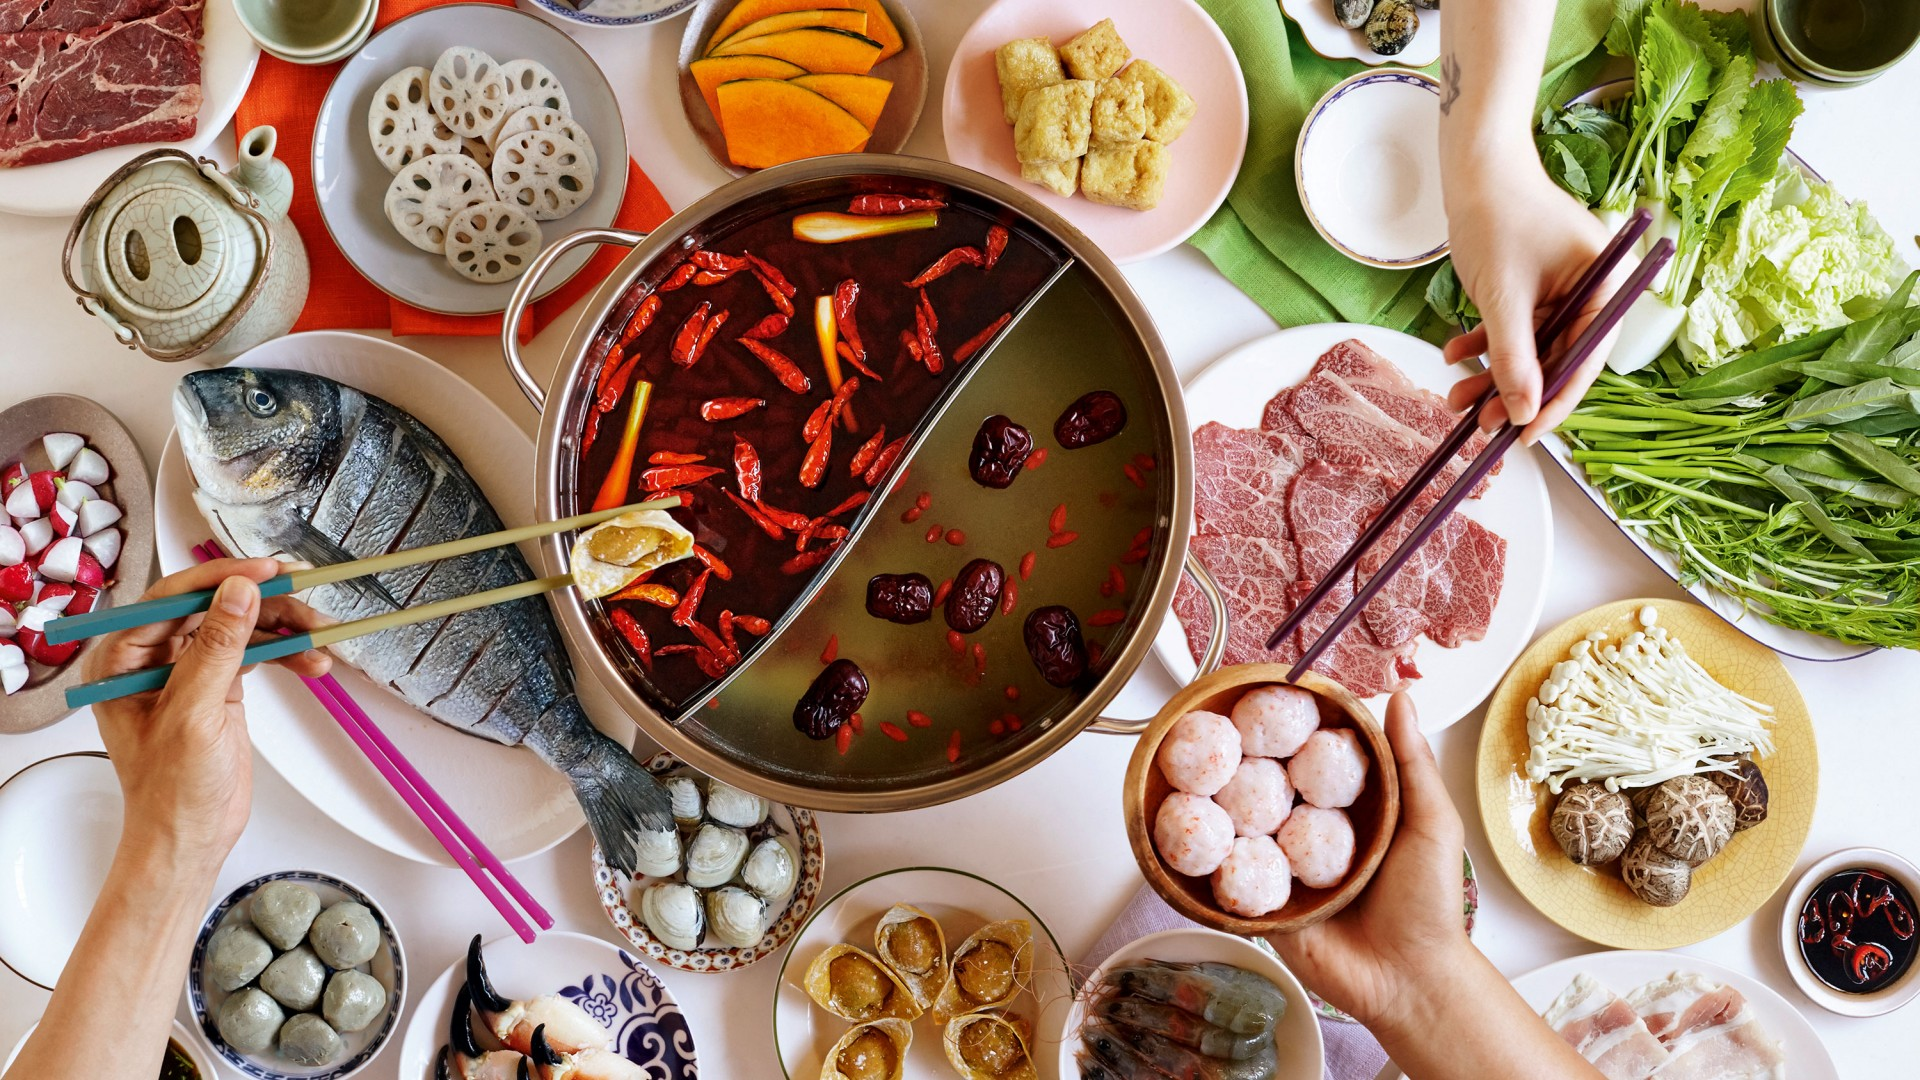 Hot pot at Shuang Shuang in Chinatown